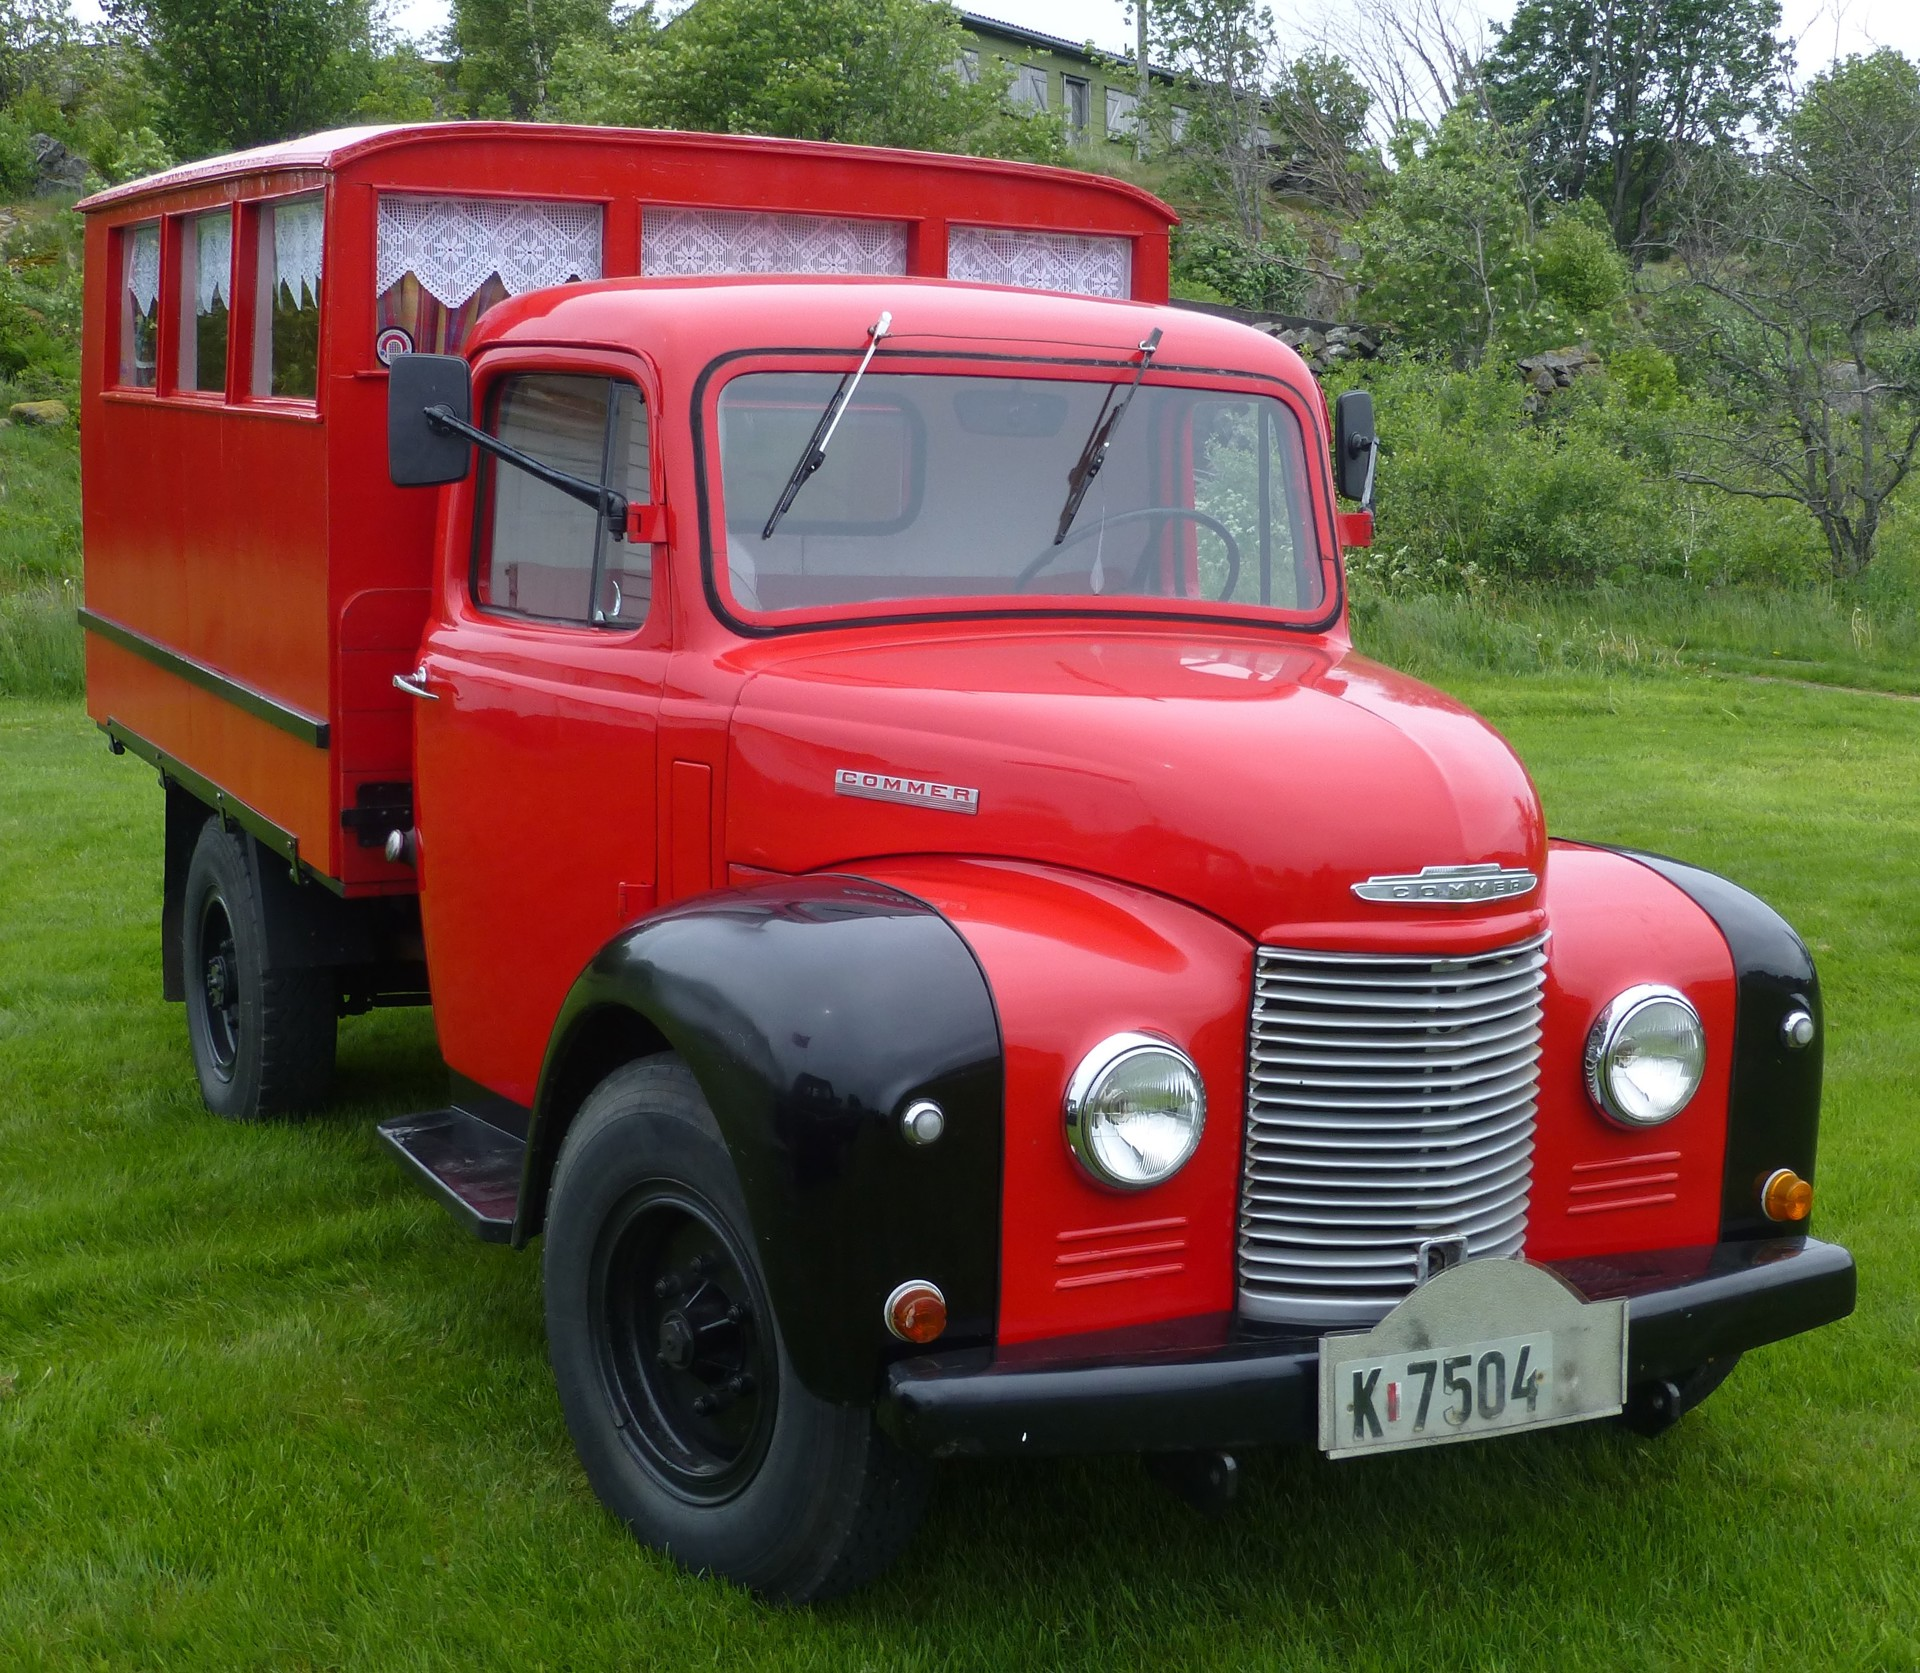 1955 Commer last med hus for passasjerer på planet